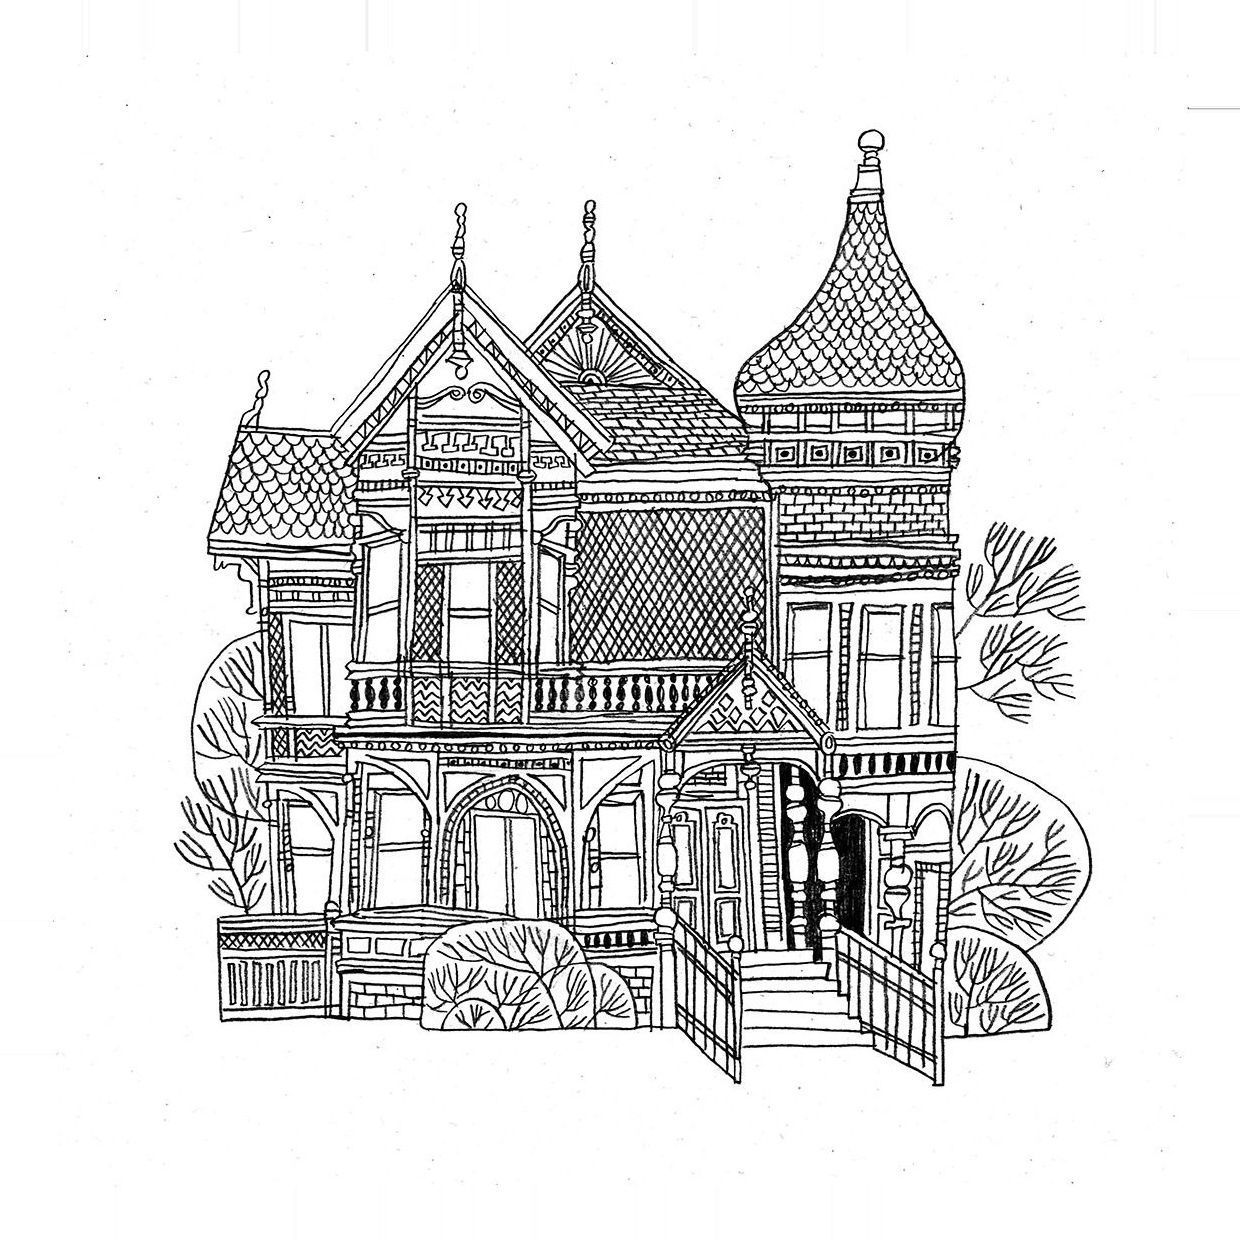 Leslie Berland #house #maison #home #victorian #victorianera #victorienne #epoque #oldhouse #vieillemaison #trees #arbres #garden #jardin #architecture #welcomehome #illustration #drawing #dessin #art #doodle #croquis #sketch #sketchbook #blackandwhite #noiretblanc #artwork Informations About leslie berland Pin You can easily use my profile to examine different pin types. leslie berland pins are as aesthetic and useful as you can use them for decorative purposes at any time and add them to your